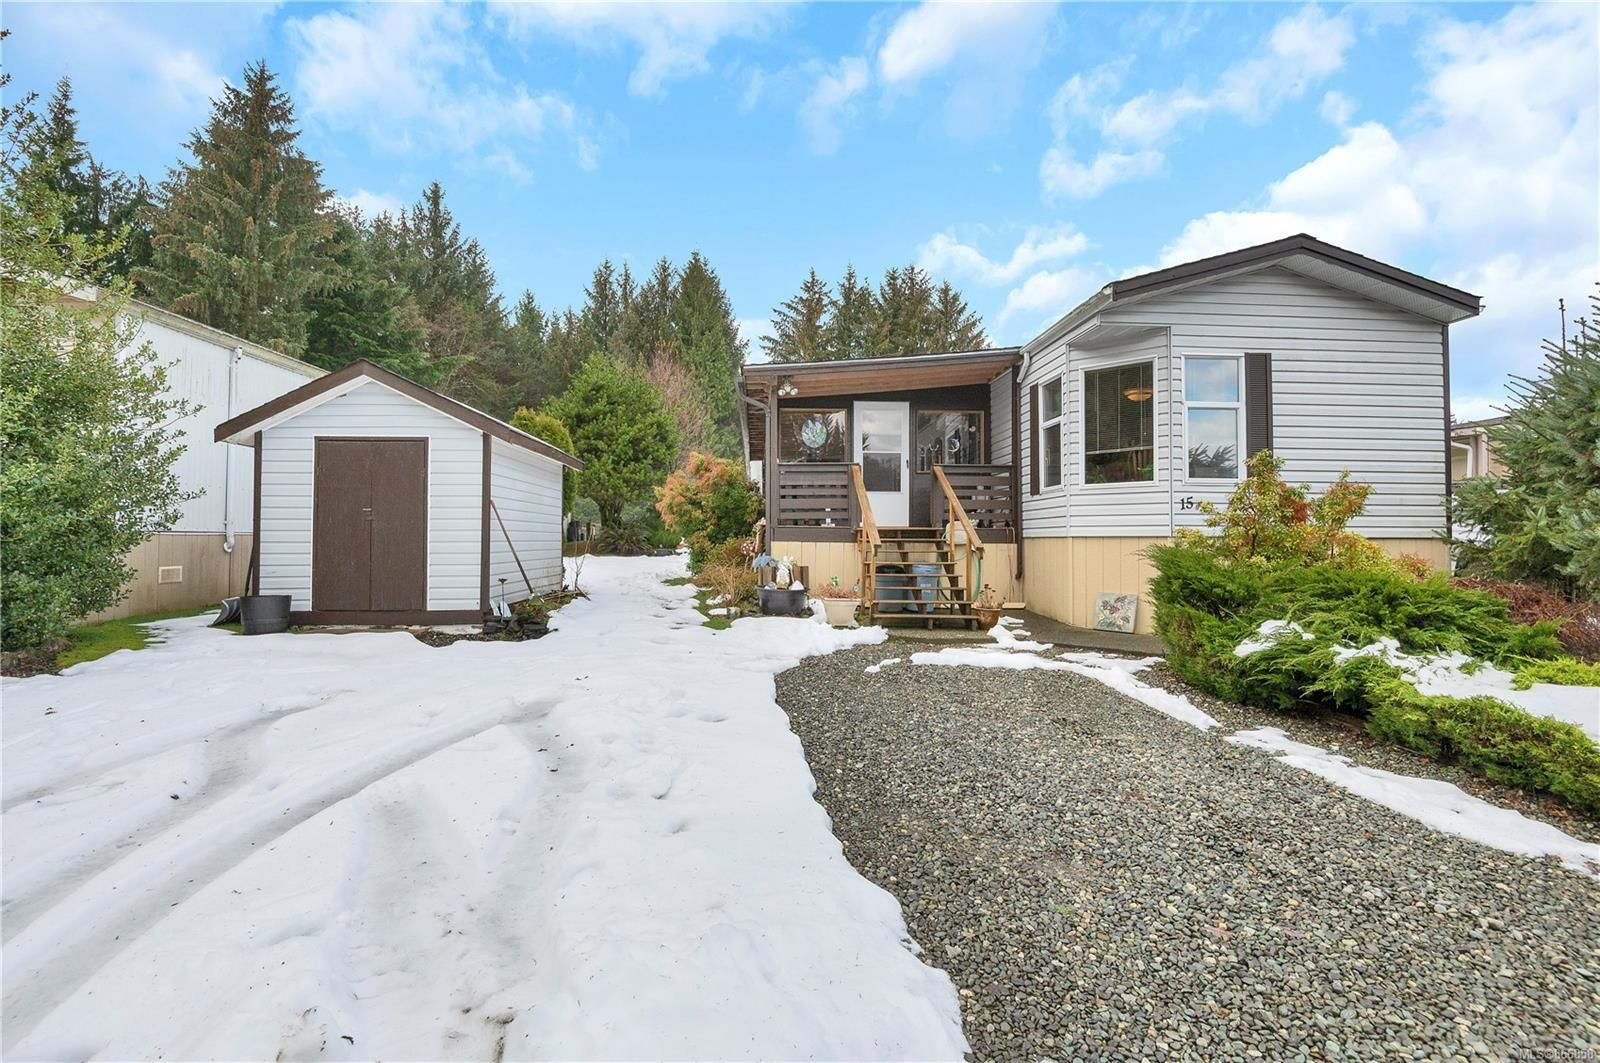 Main Photo: 15 5100 Duncan Bay Rd in : CR Campbell River North Manufactured Home for sale (Campbell River)  : MLS®# 866858